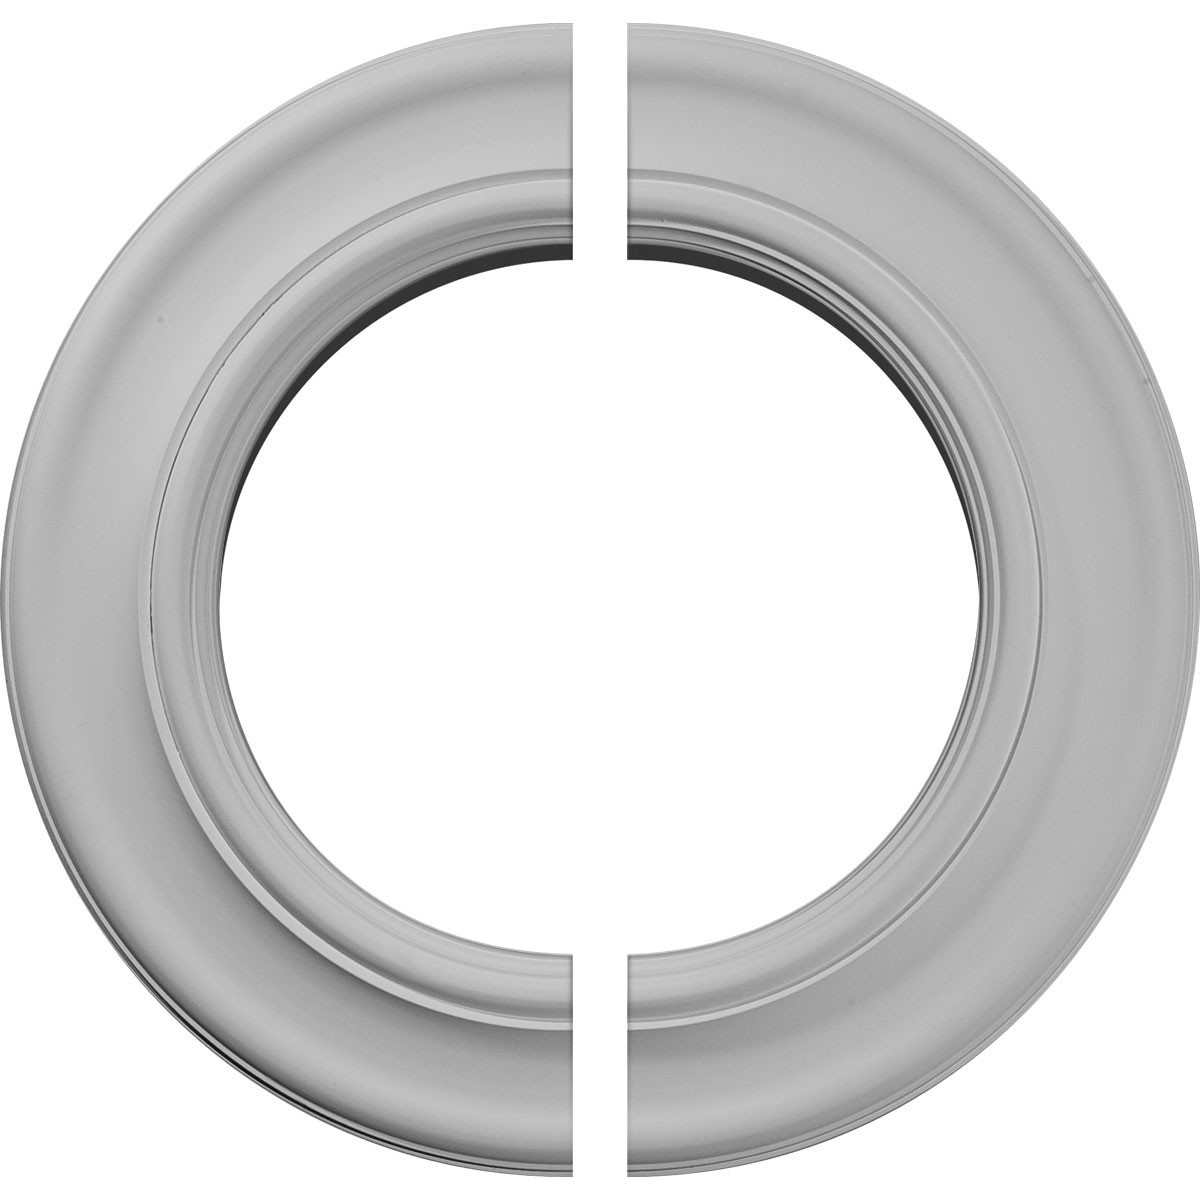 """EM-CM20HO2 - 20 7/8""""OD x 12 7/8""""ID x 1""""P Holmdel Ceiling Medallion, Two Piece (Fits Canopies up to 12 7/8"""")"""